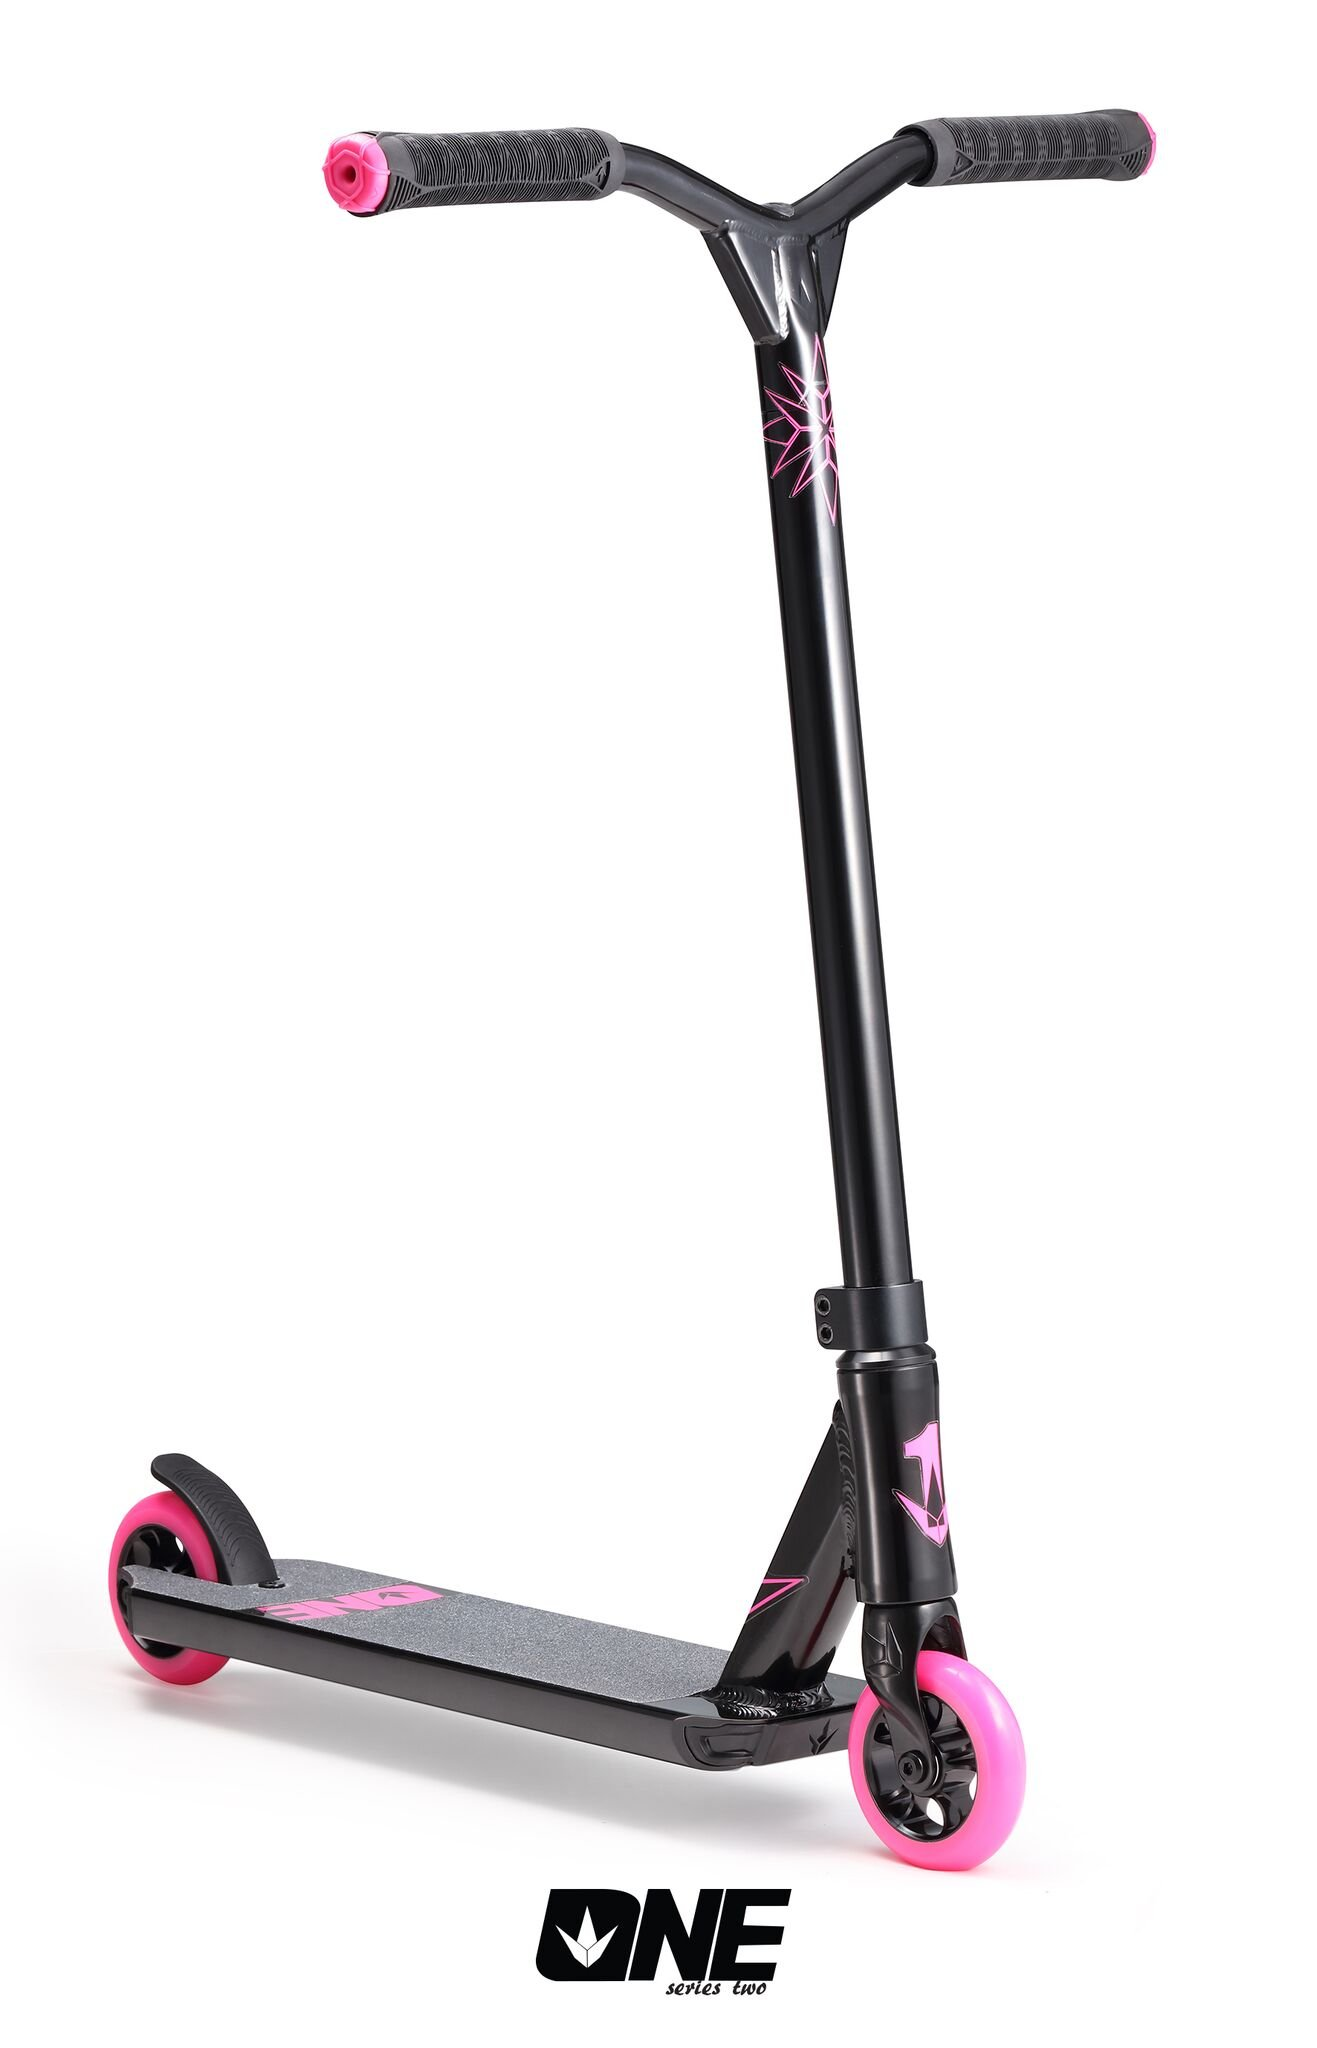 Envy One Series 2 Freestyle Pro Scooter (Pink)